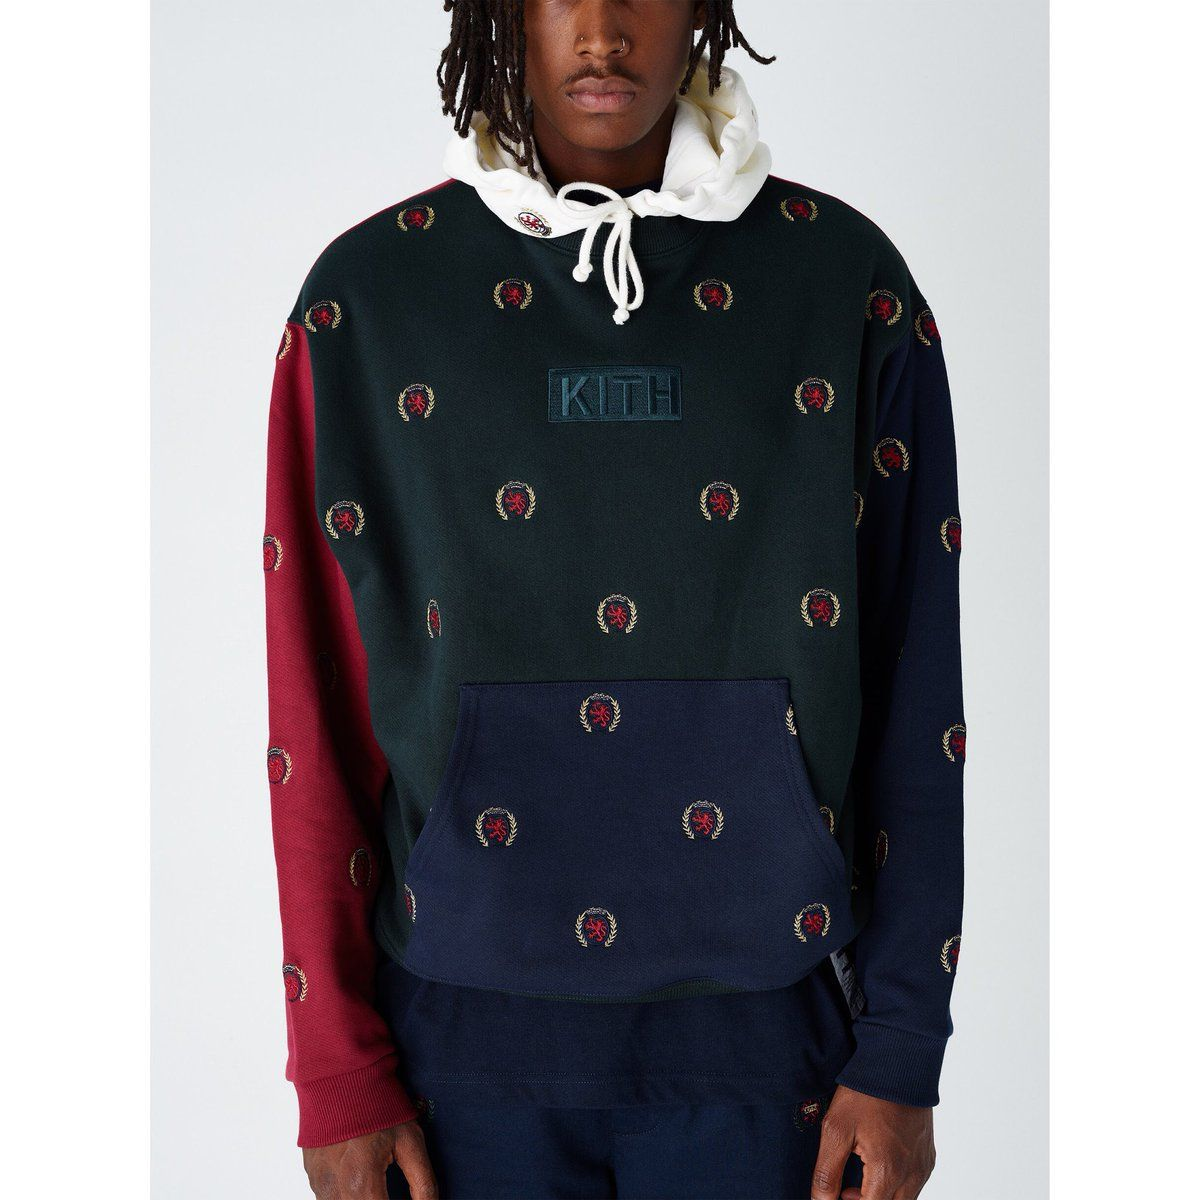 c6dd5f7404 Kith x Tommy Hilfiger Full Embroidered Crest Hoodie - Multi ...